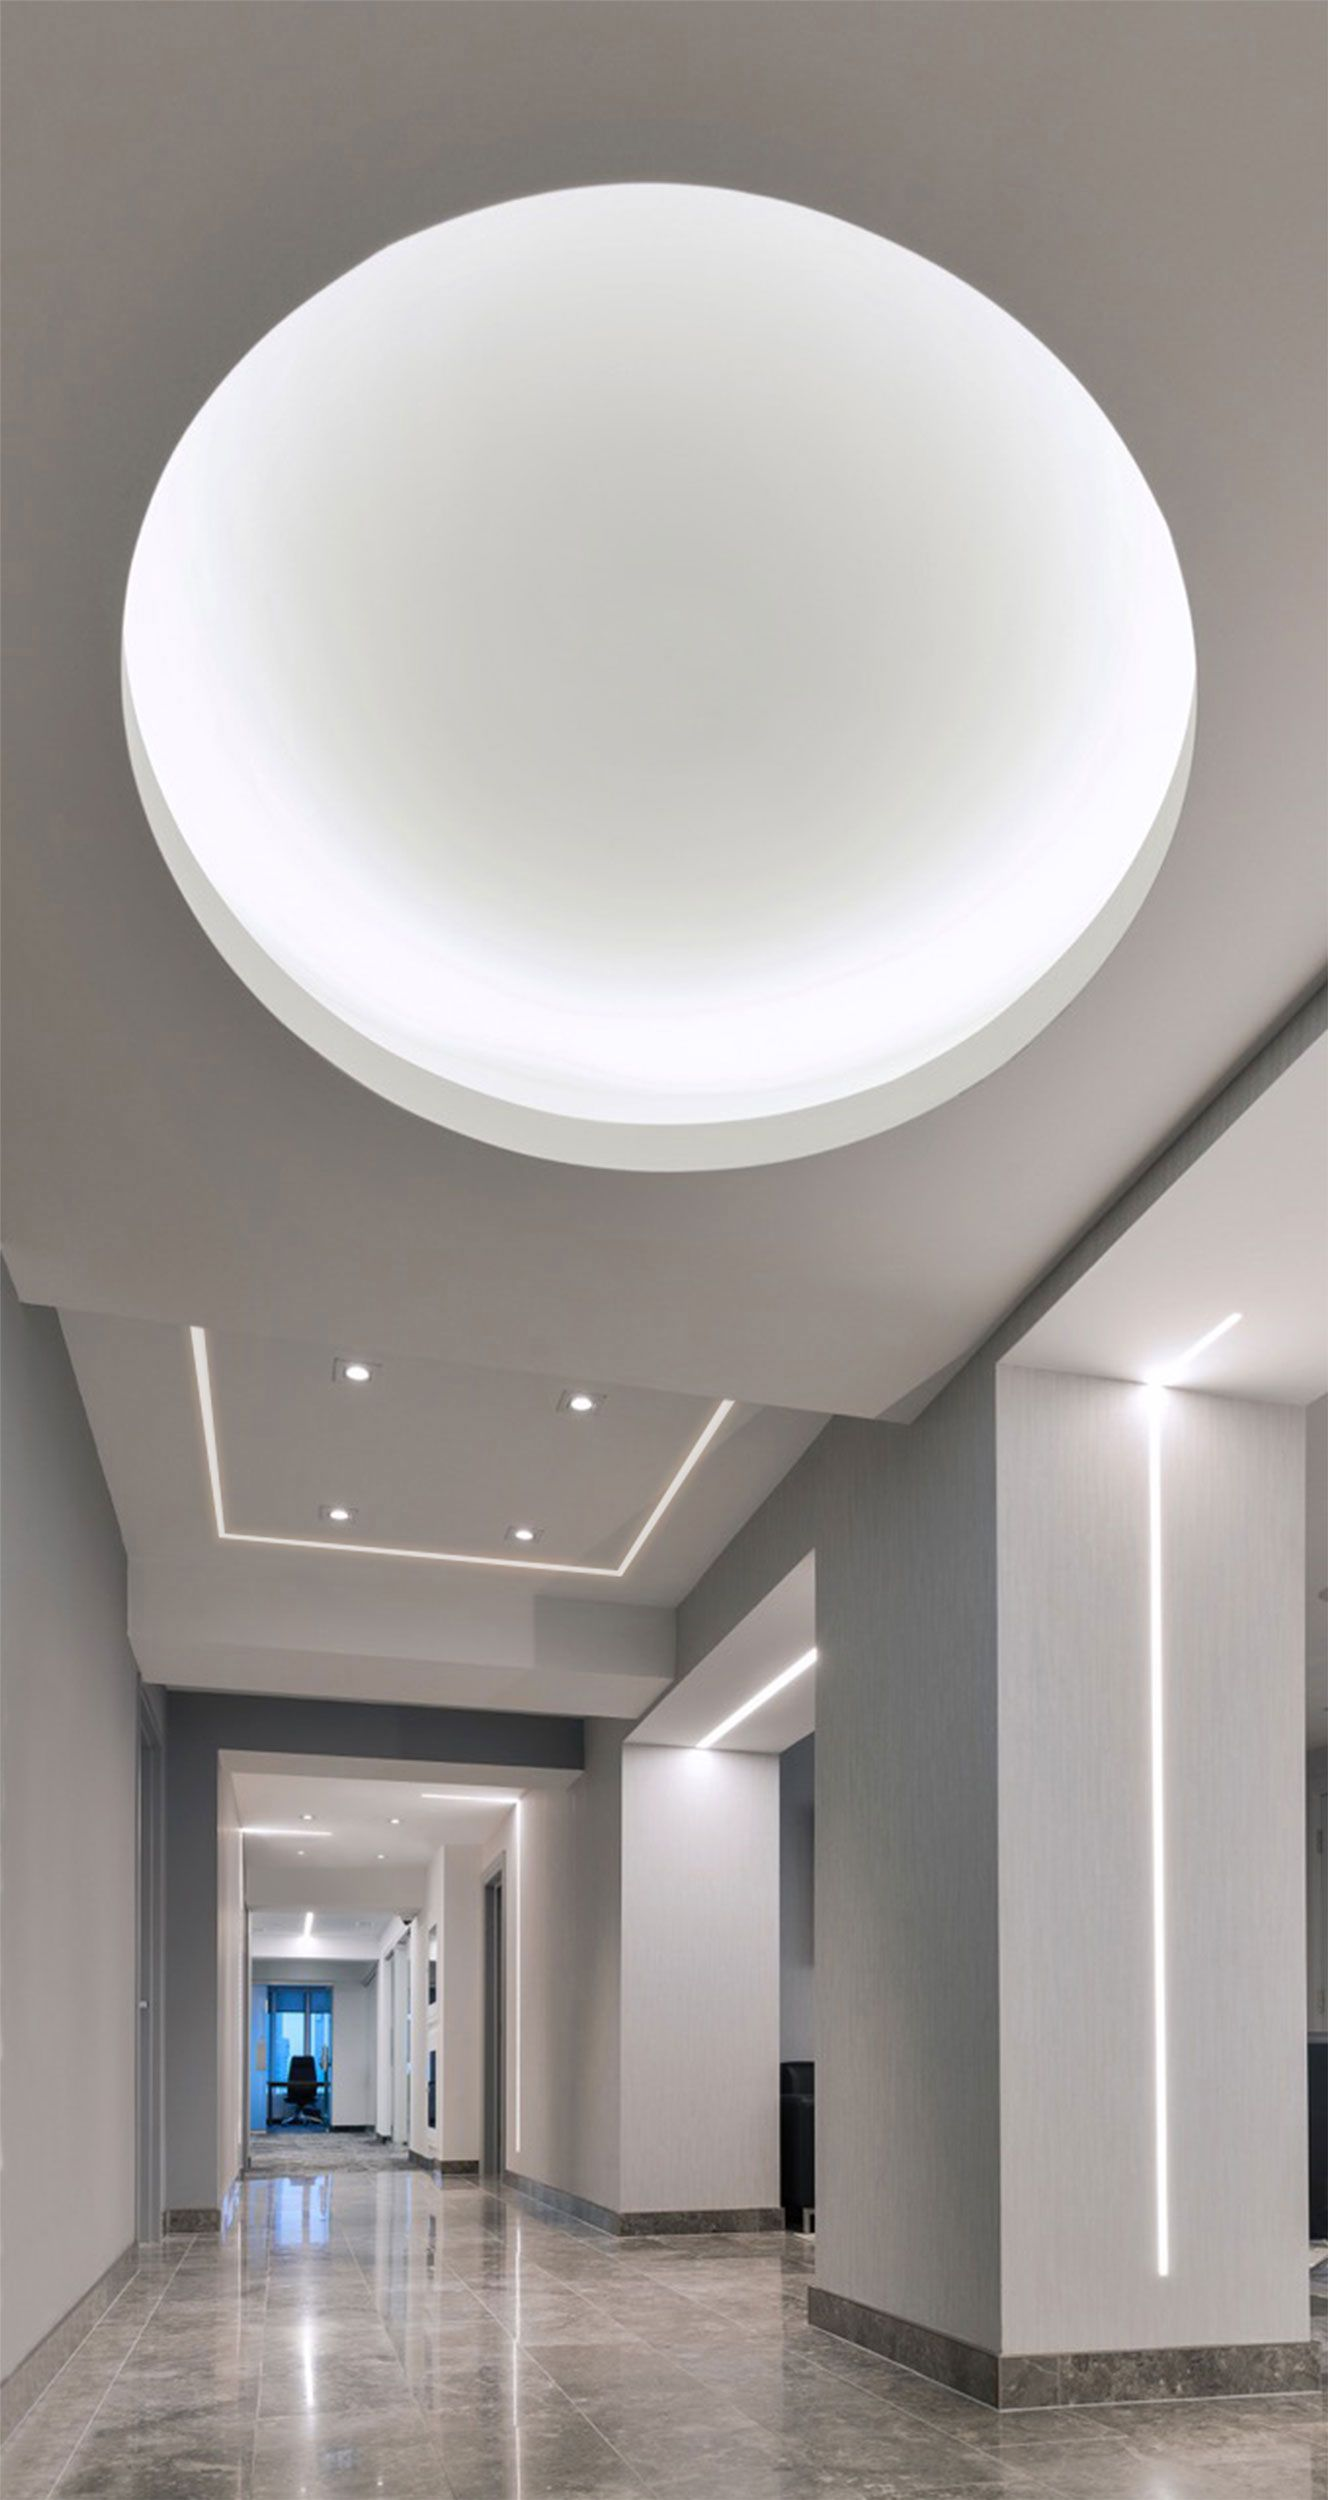 Truline 1 6a plaster in led system 10w 24vdc by pure lighting